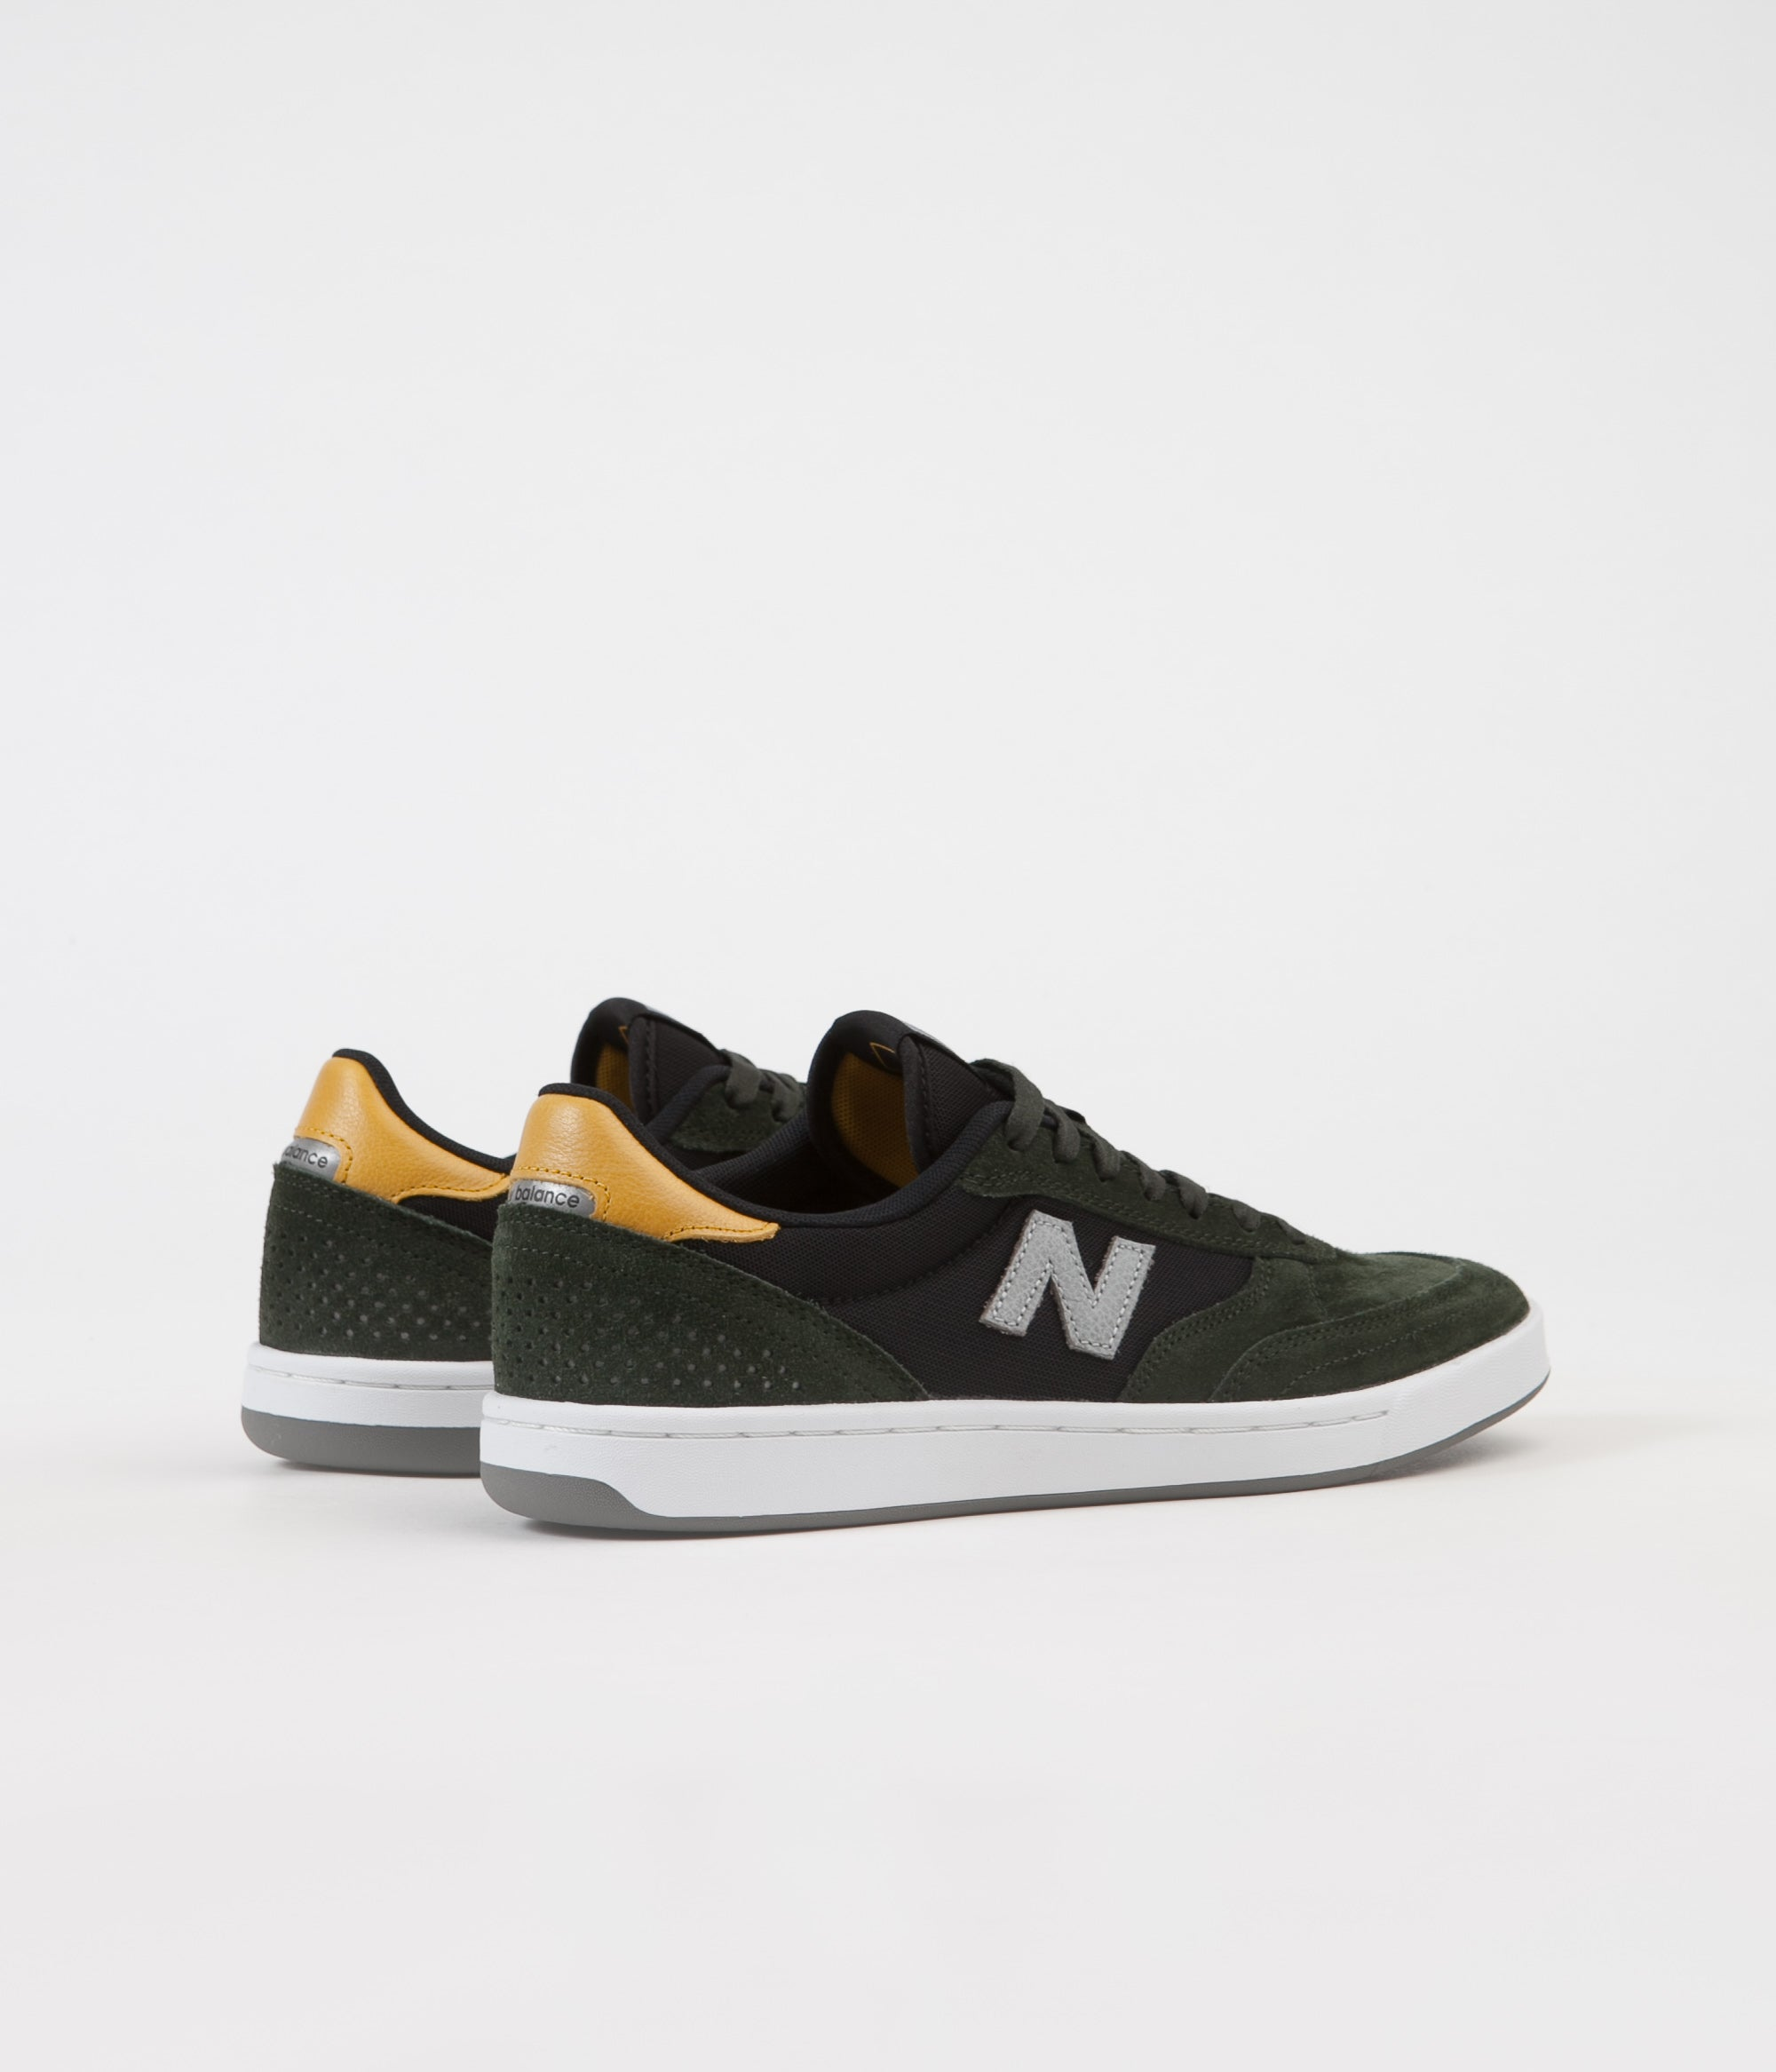 New Balance Numeric 440 Shoes - Forest / Black